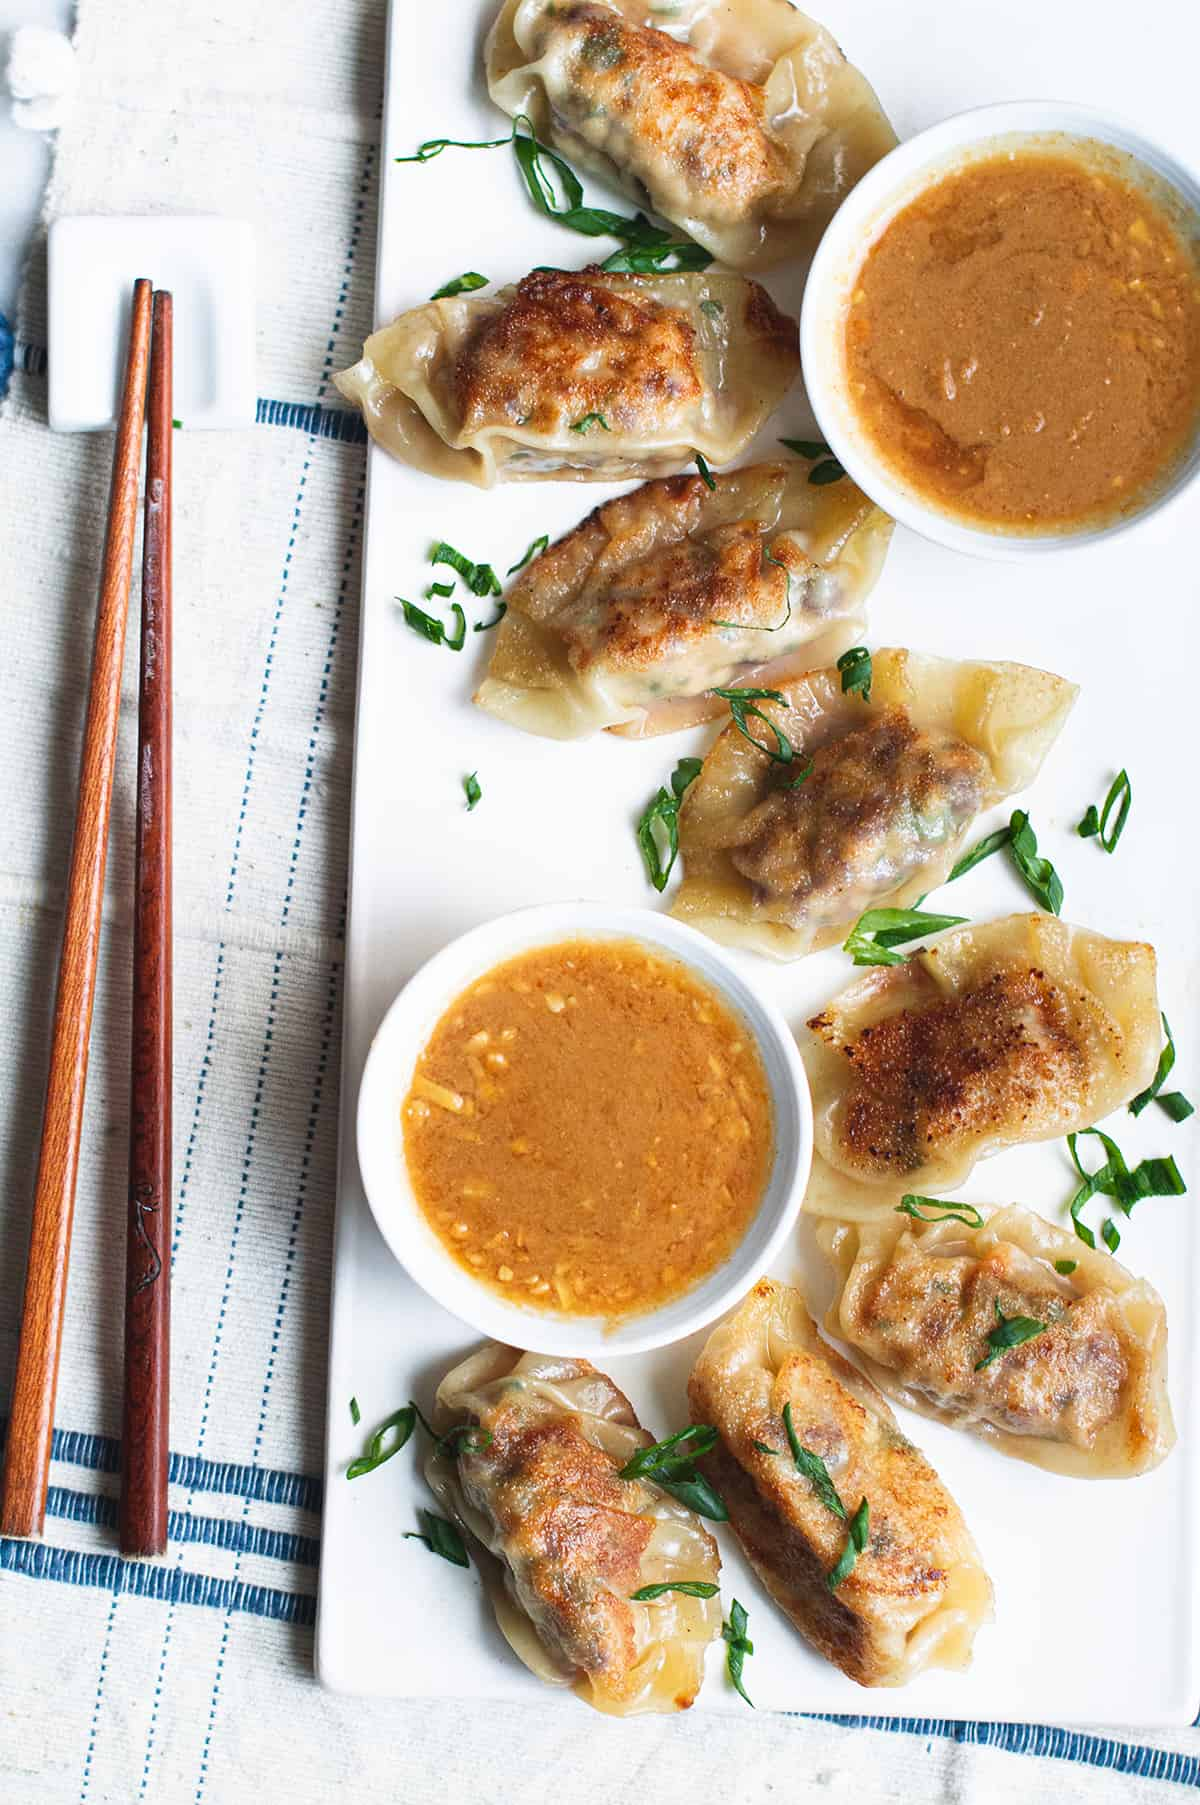 dumplings on a white plate with bowl of peanut dipping sauce